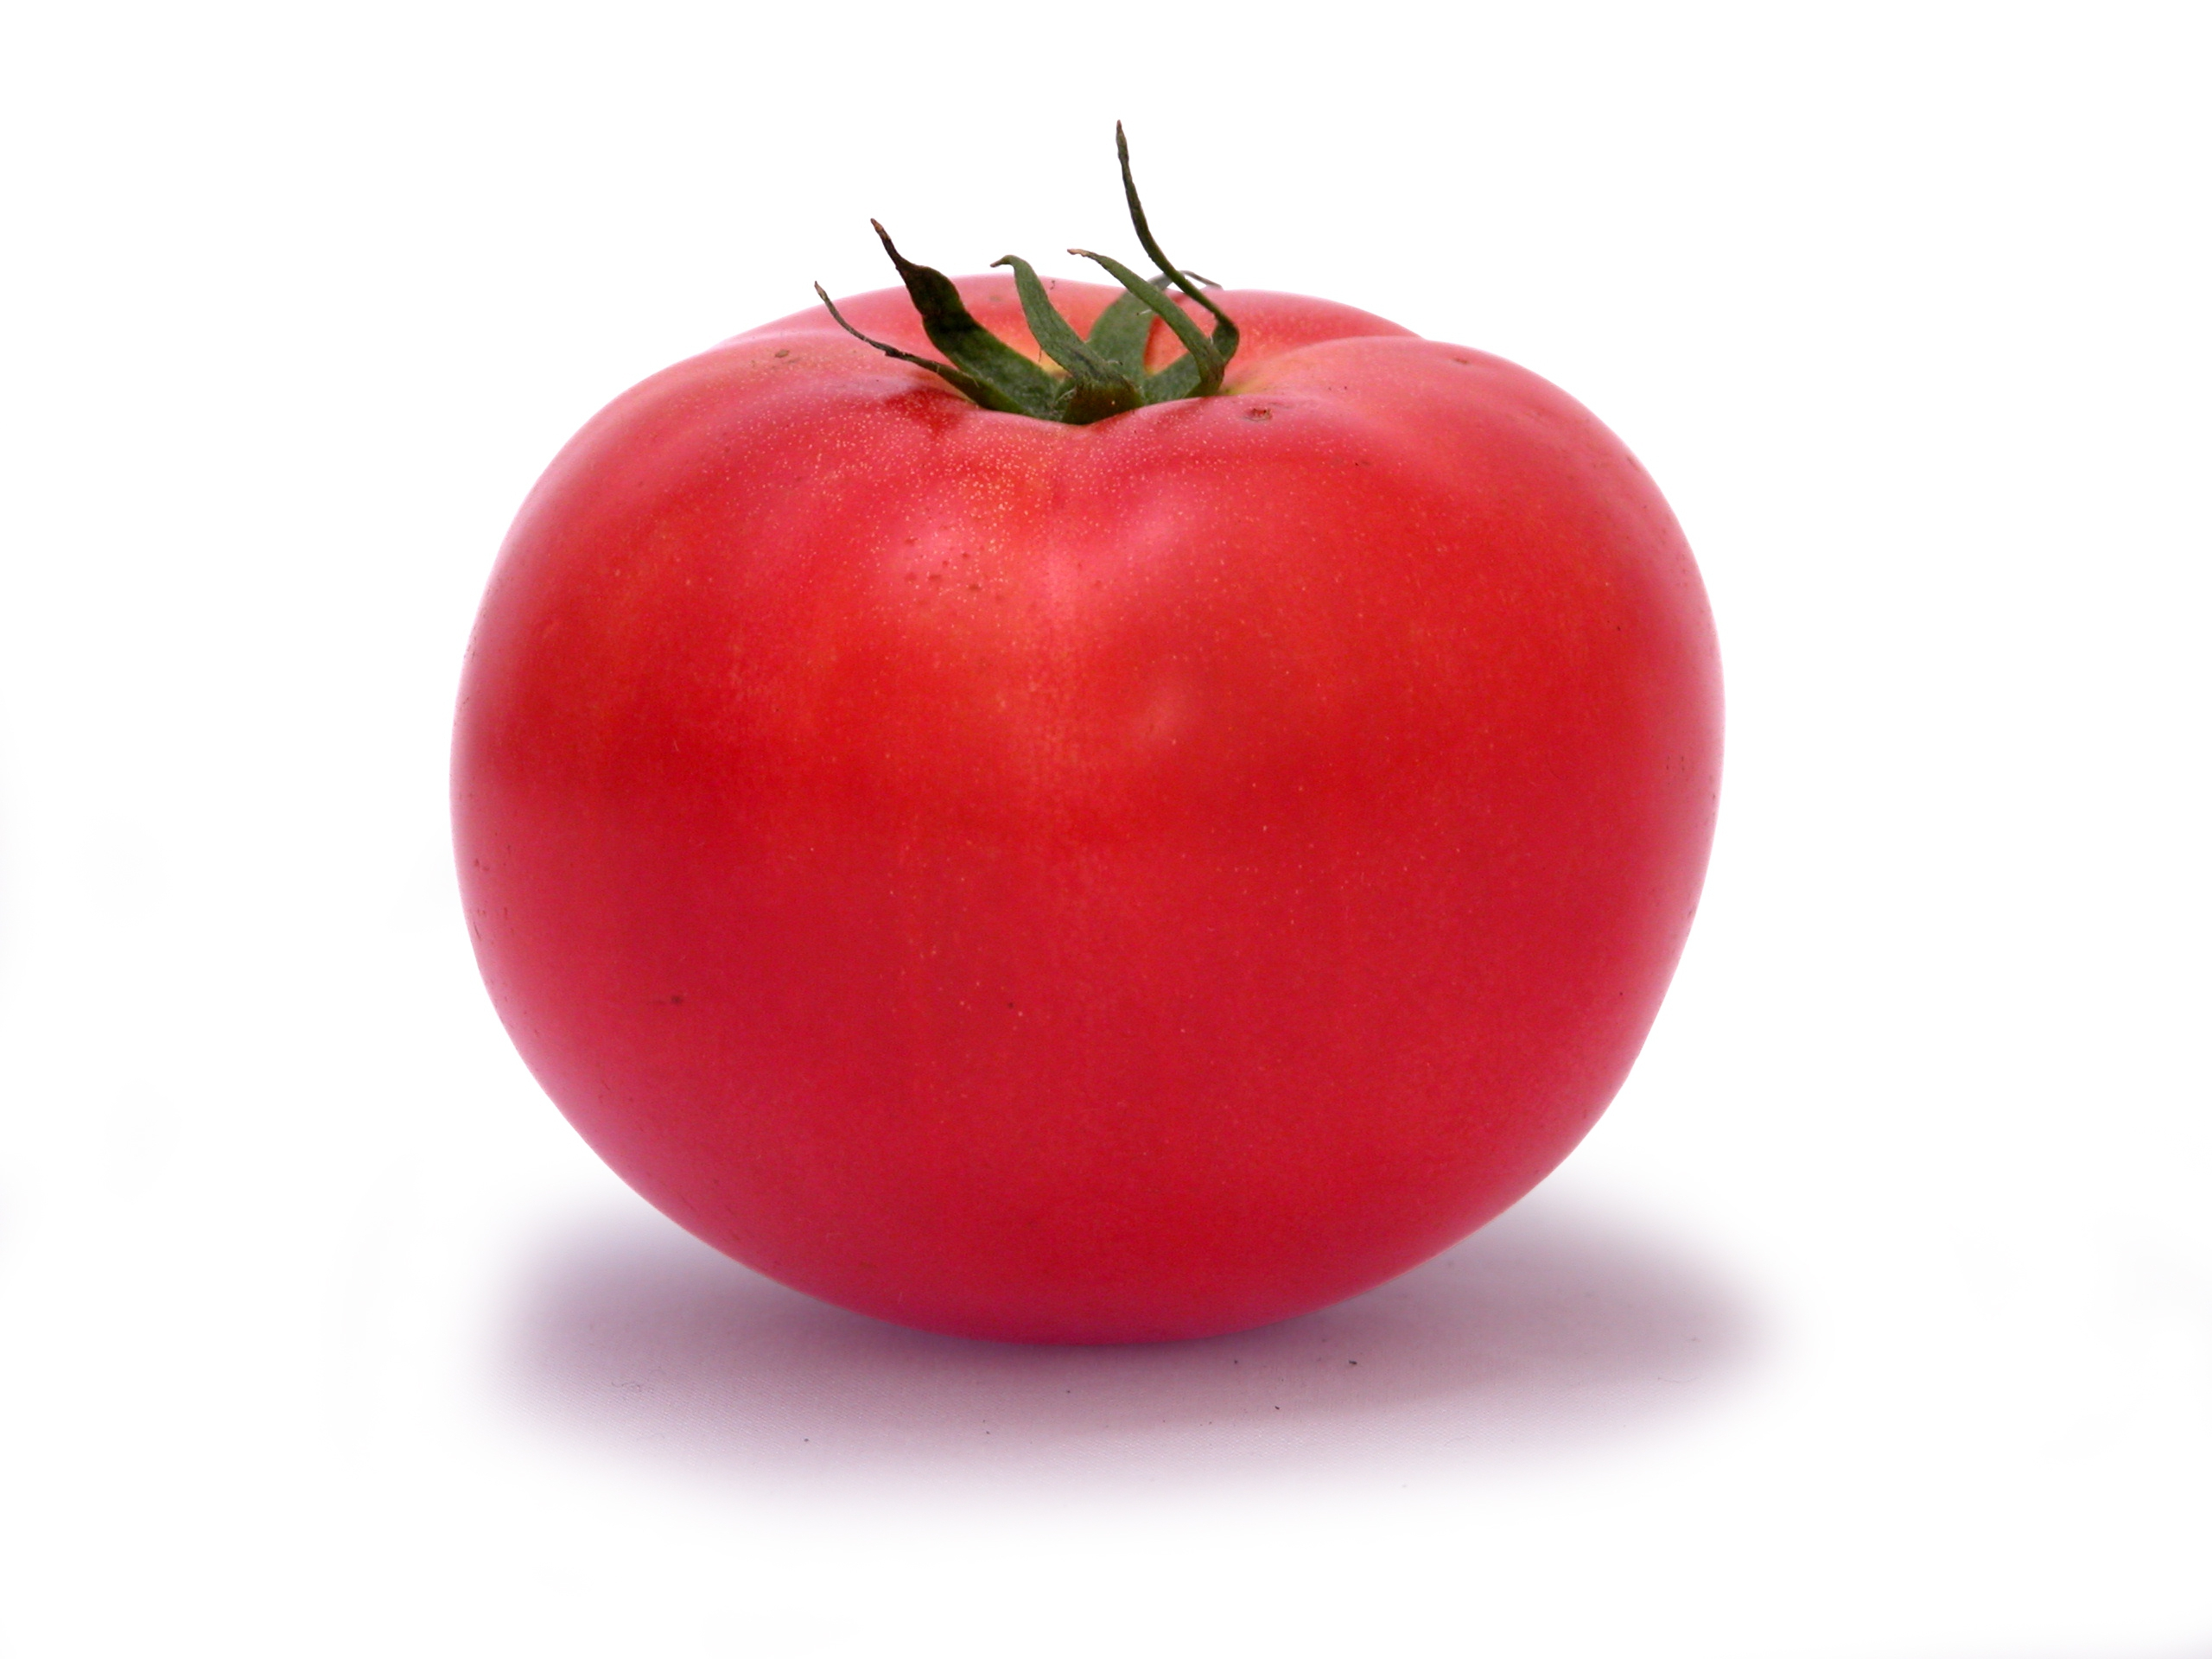 Tomato Wallpapers